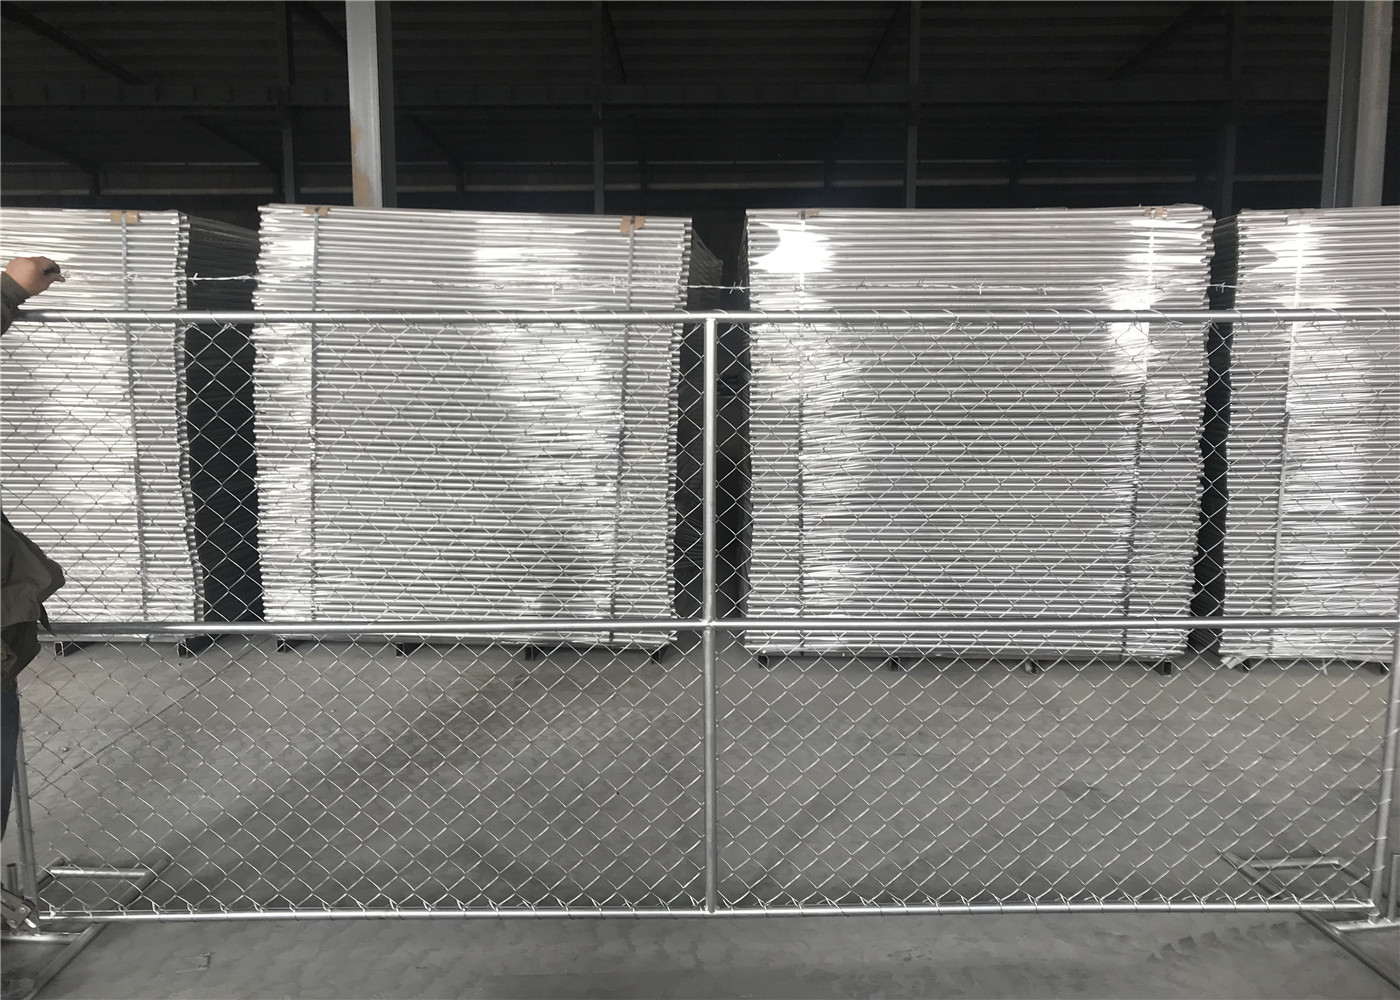 6 X12 Chain Link Fence Panels Construction Security 1⅝